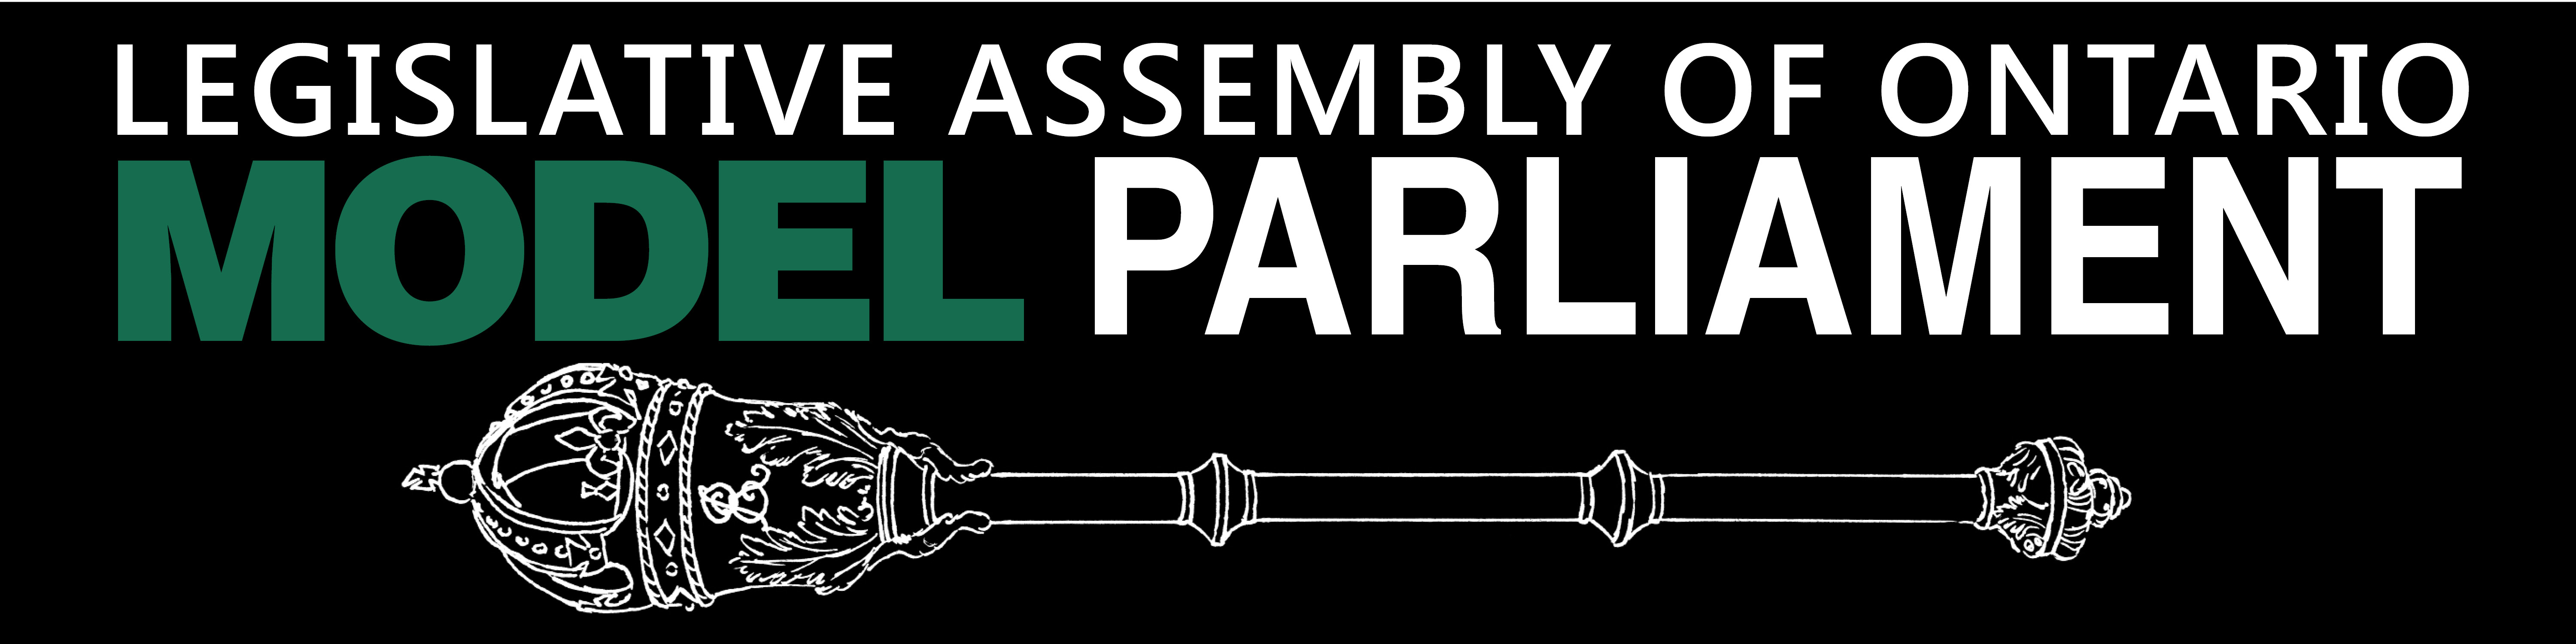 Legislative Assembly of Ontario Model Parliament Graphic